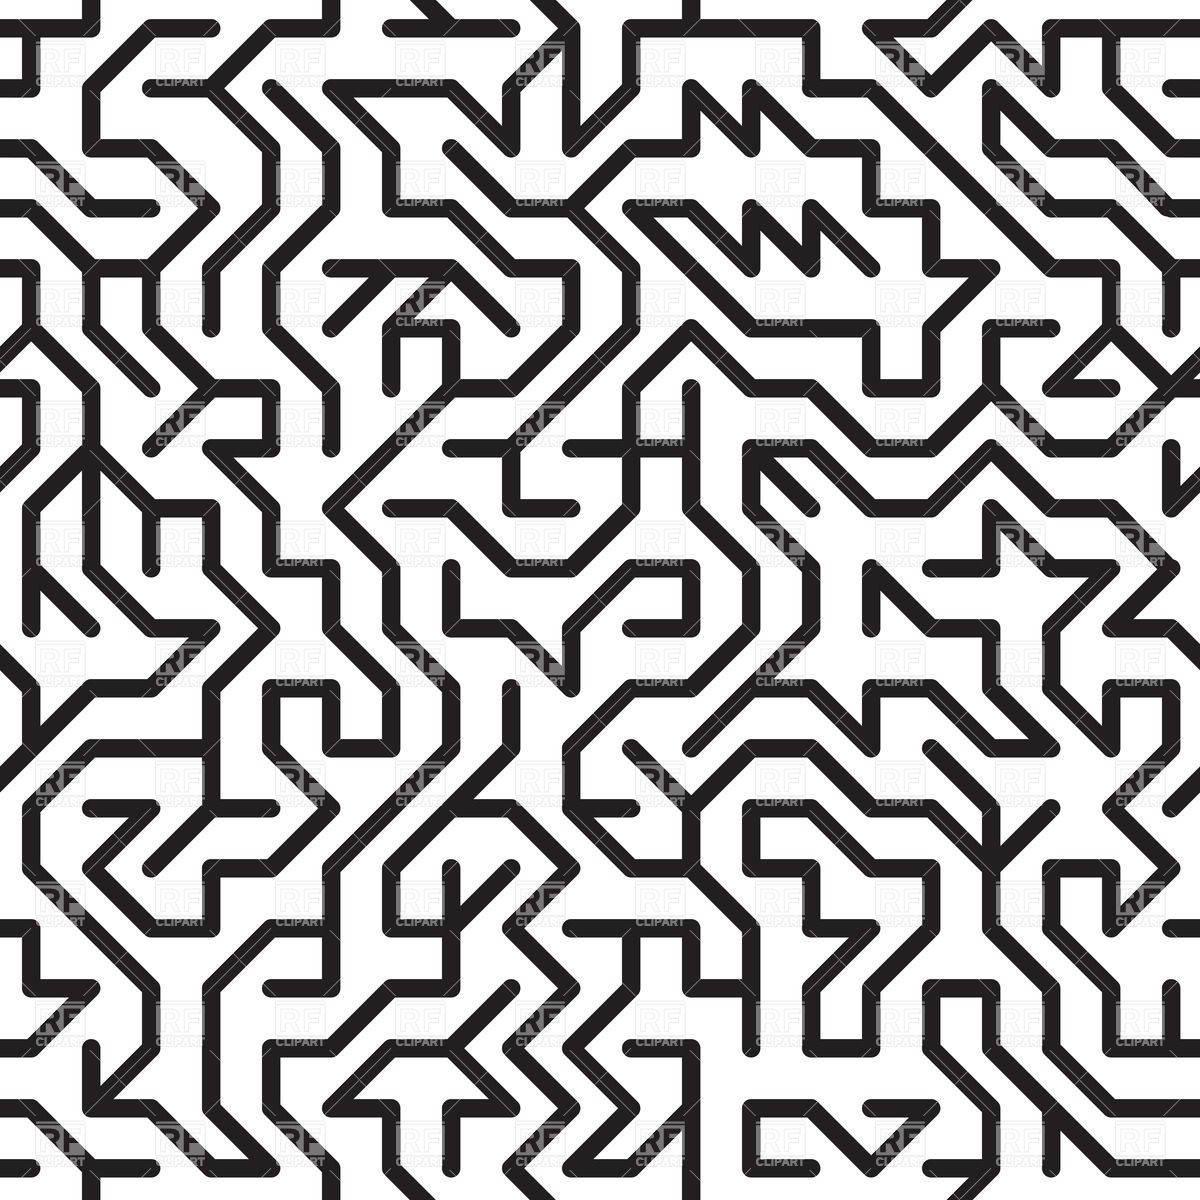 1200x1200 Black And White Complex Maze Vector Image Vector Artwork Of